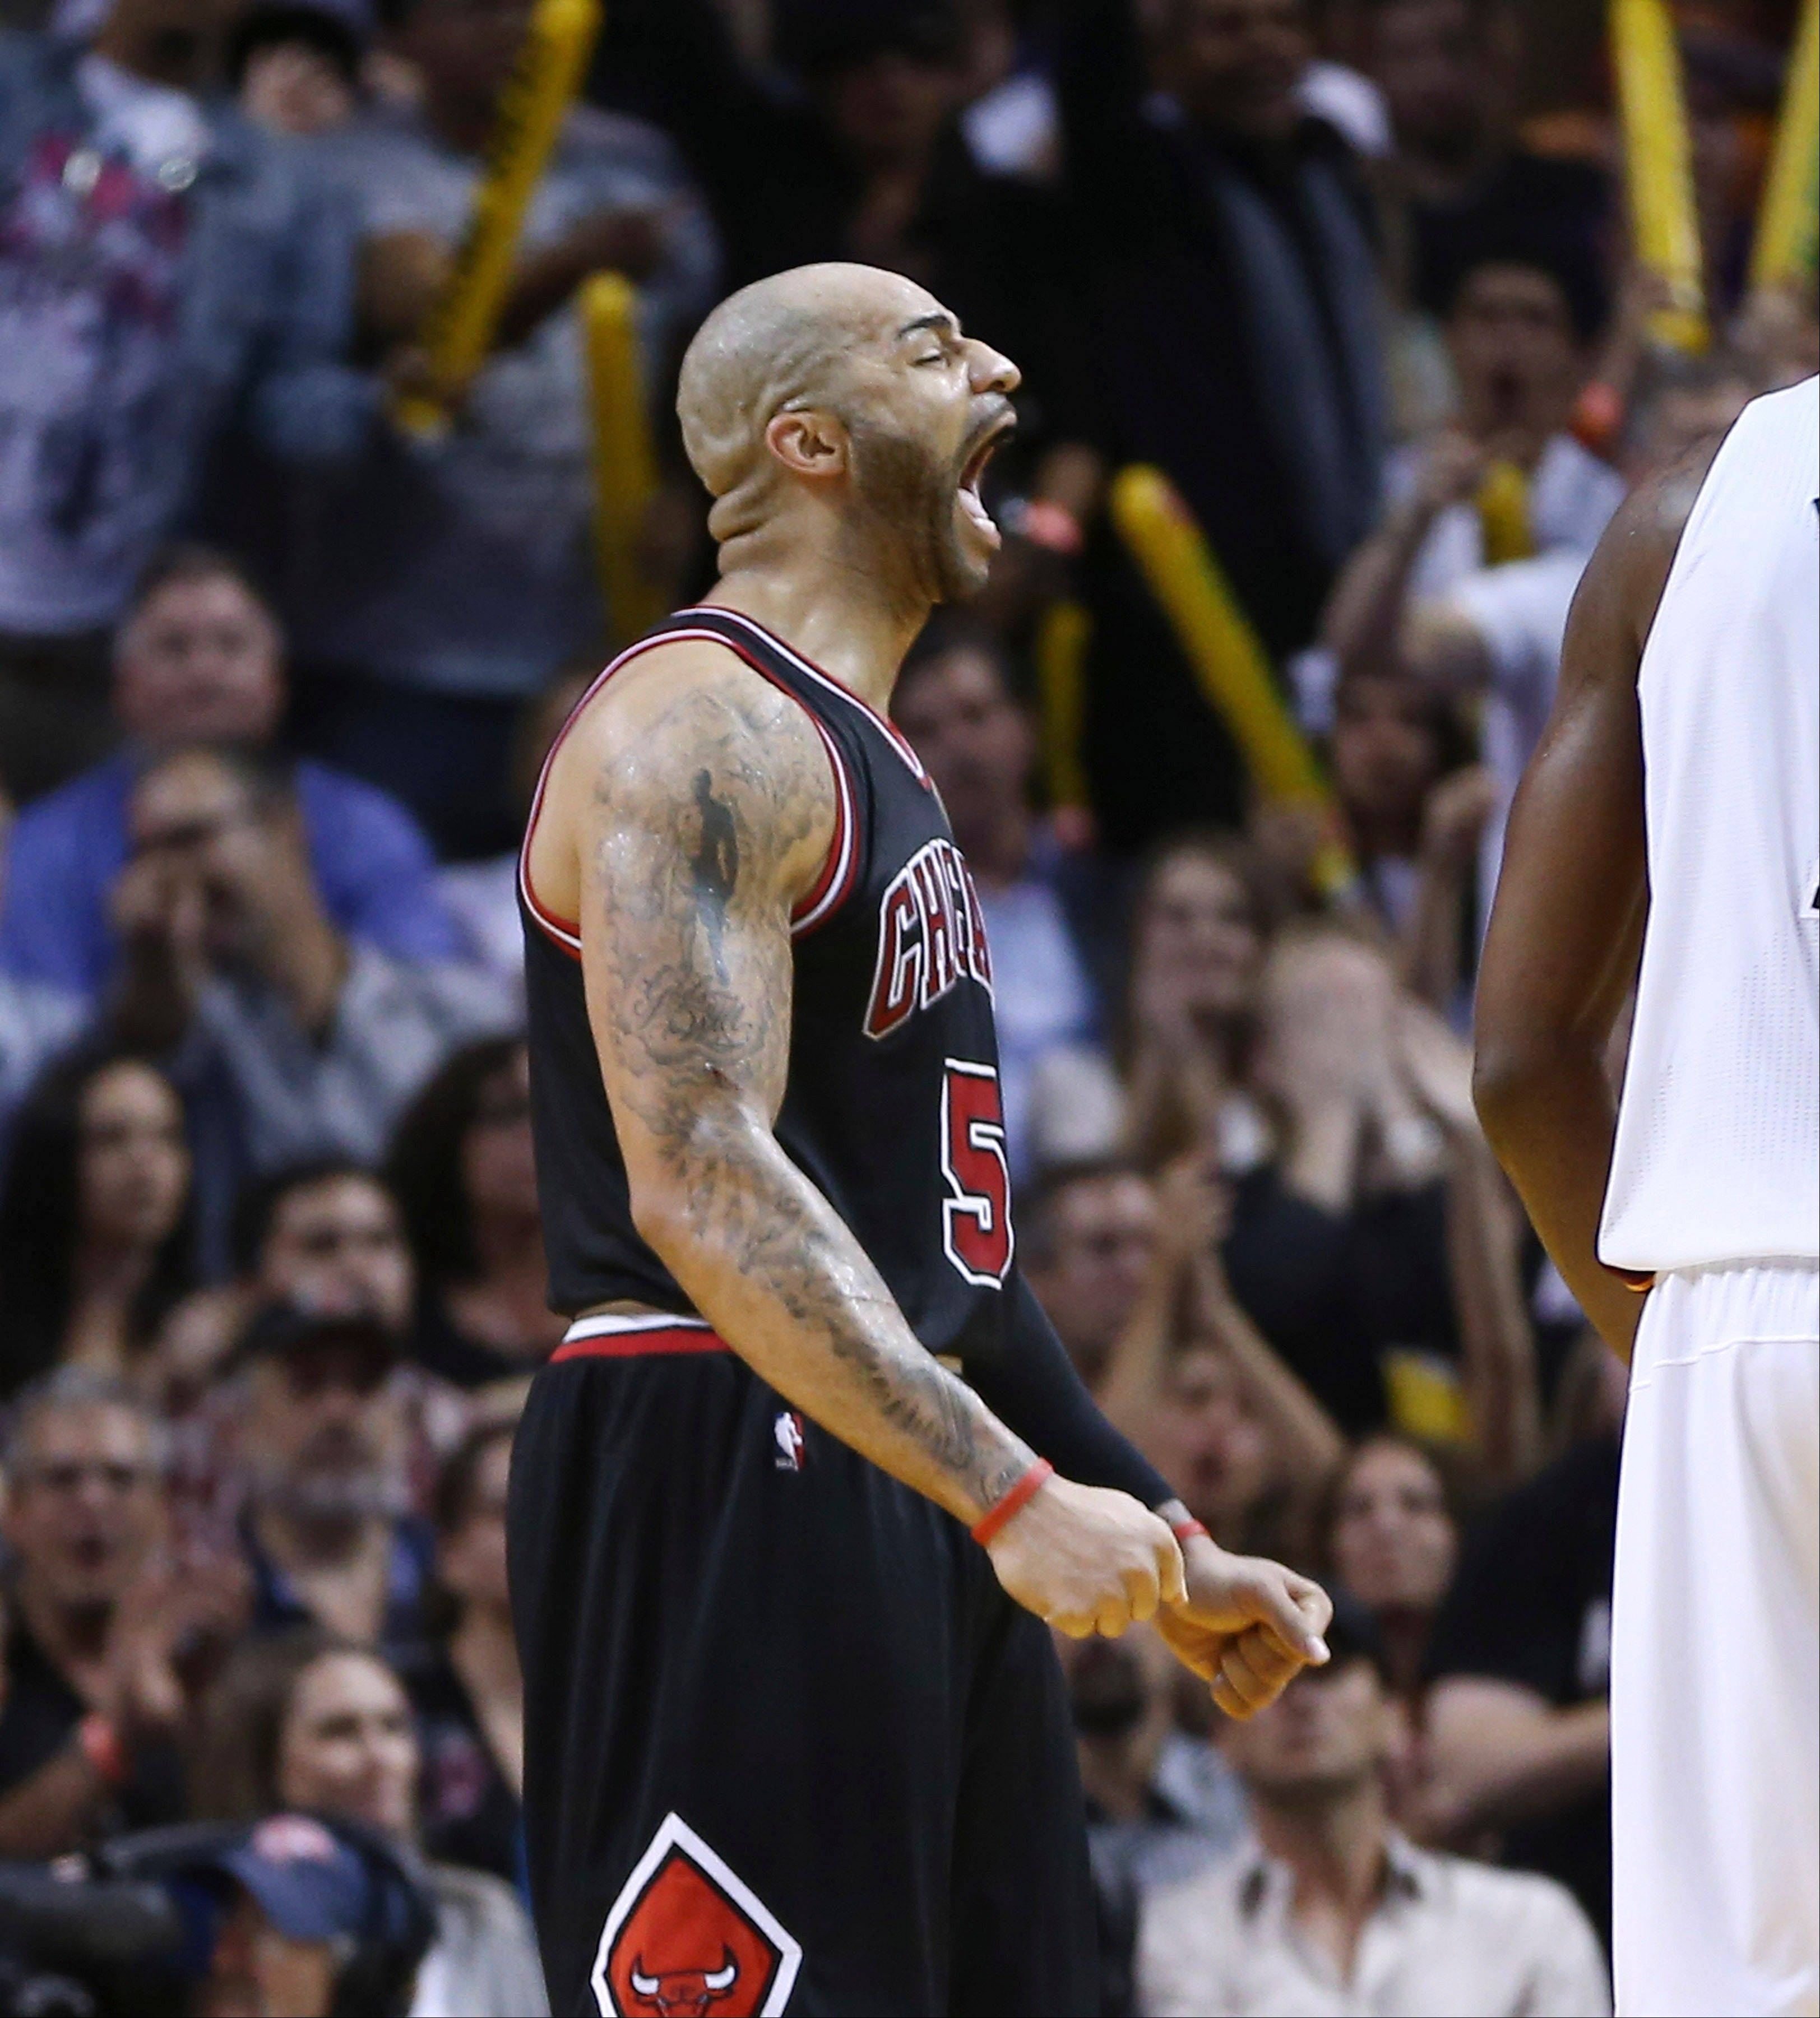 Chicago Bulls player Carlos Boozer reacts after the Miami Heat were charged with an offensive foul during the second half of an NBA basketball game in Miami, Friday, Jan. 4, 2013. The Bulls won 96-89. (AP Photo/J Pat Carter)